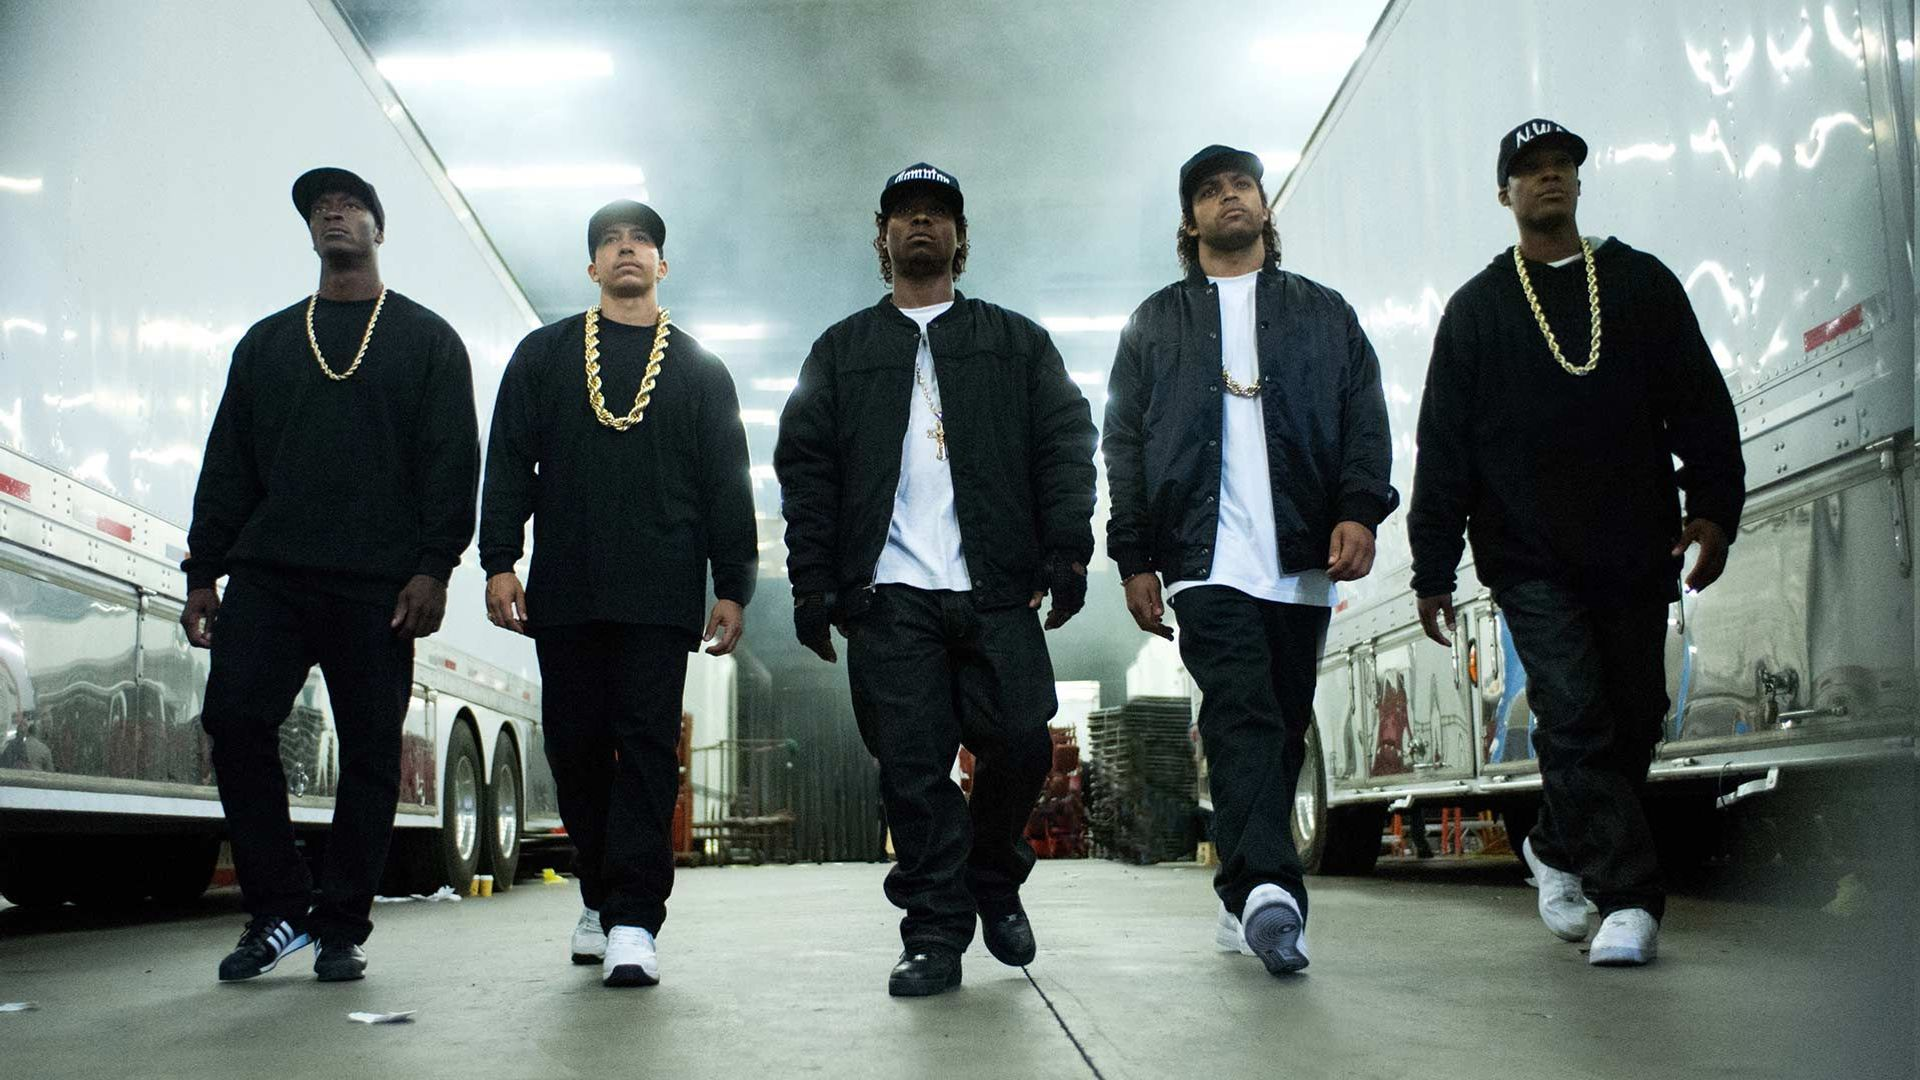 straight outta compton characters